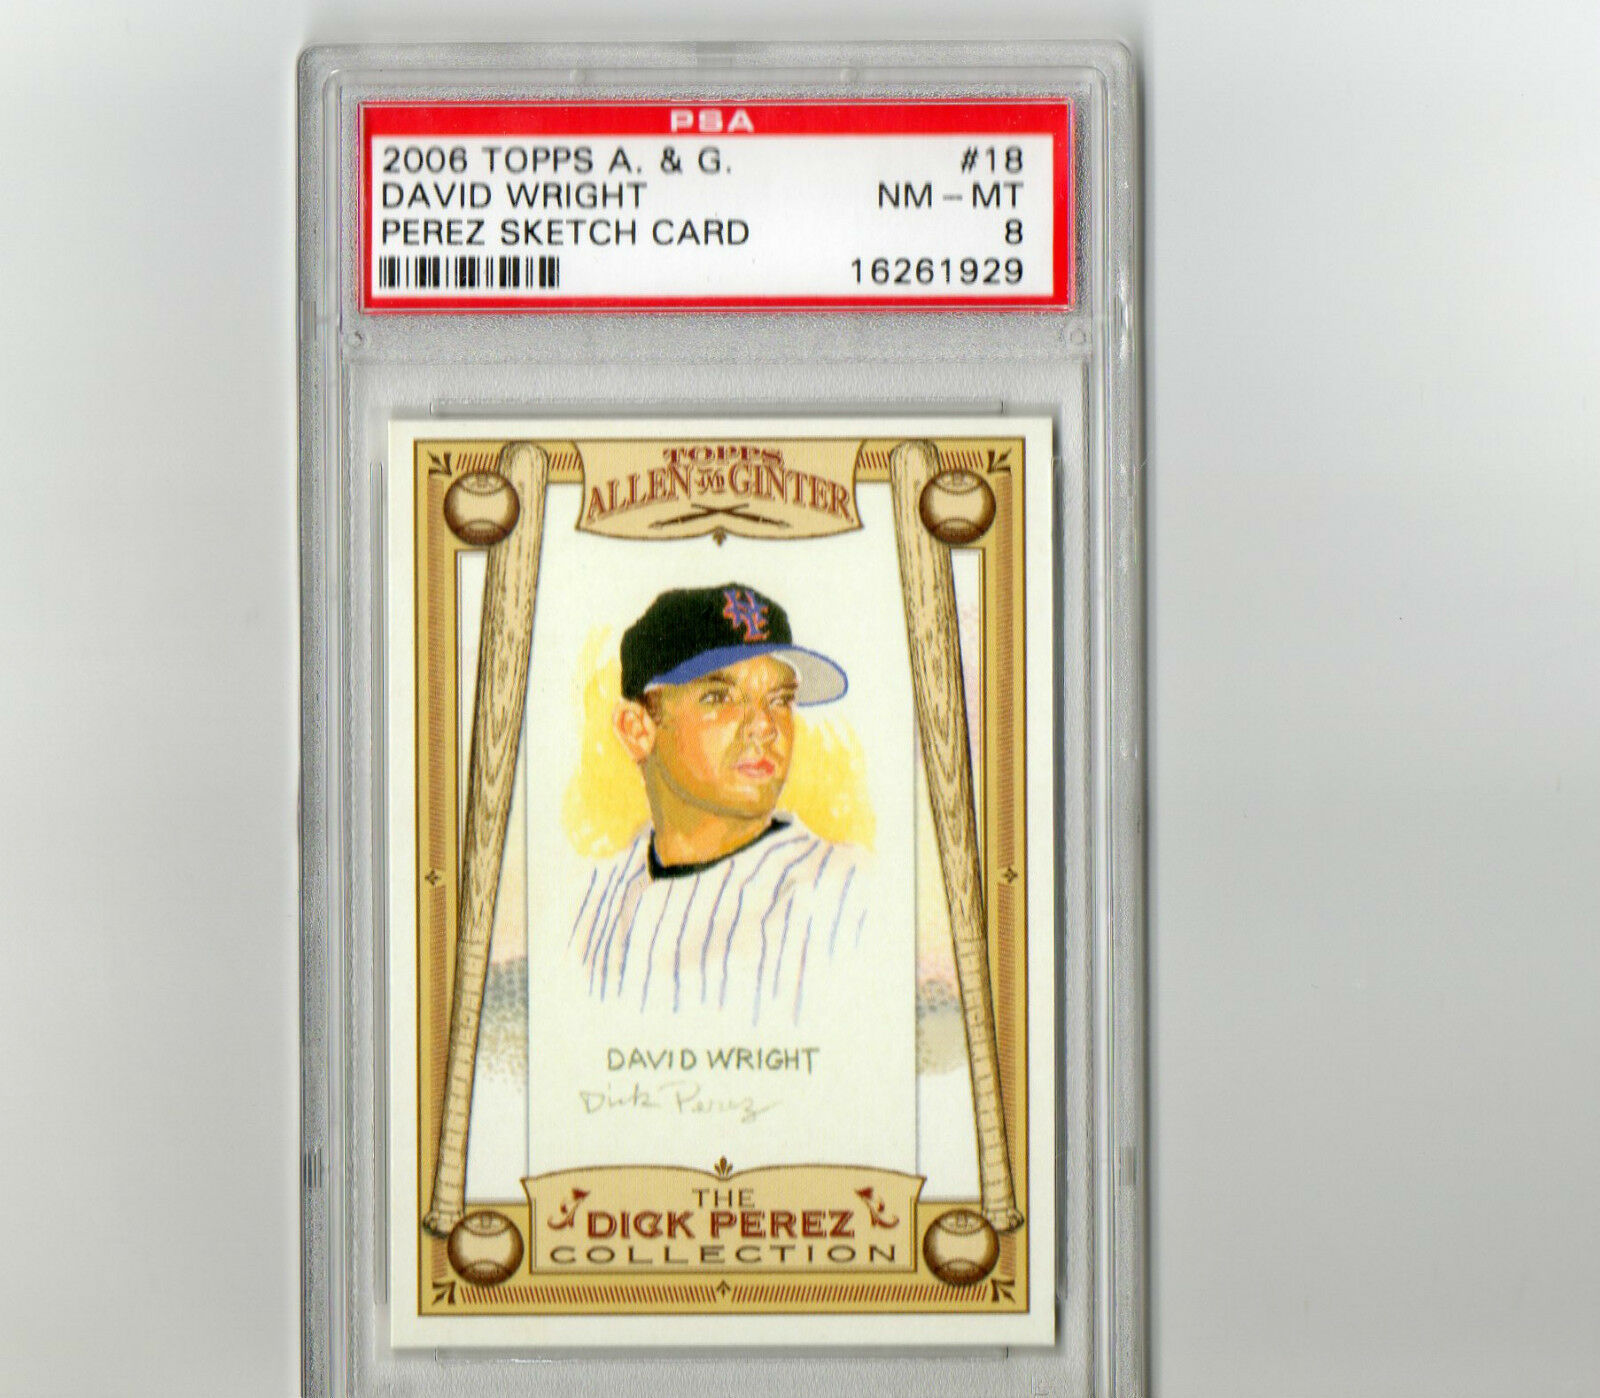 Primary image for 2006 Topps Allen & Ginter David Wright Perez Sketch Card #18 PSA 8 P542